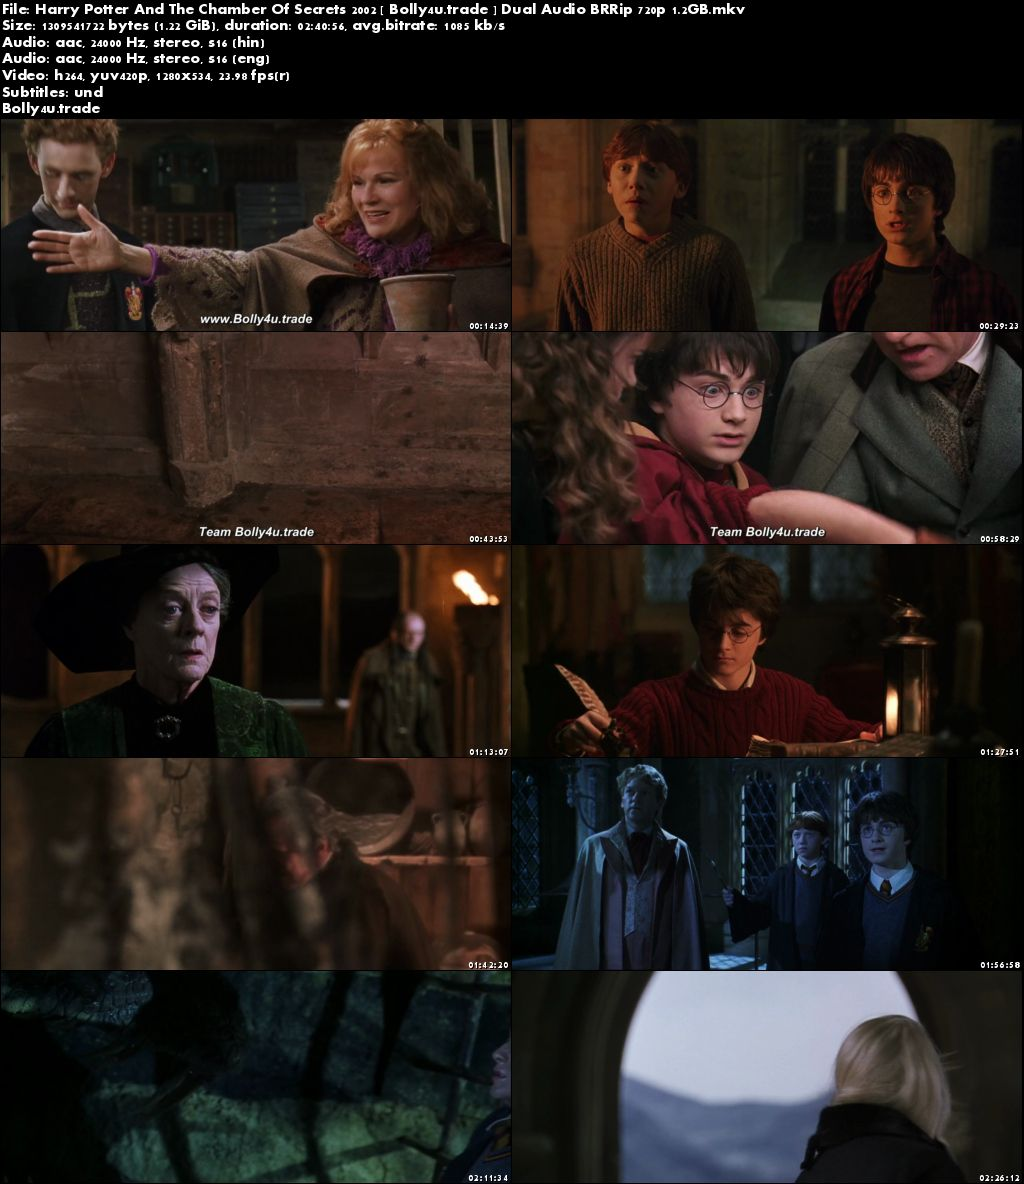 Harry Potter And The Chamber Of Secrets 2002 BRRip Hindi Dual Audio 720p Download